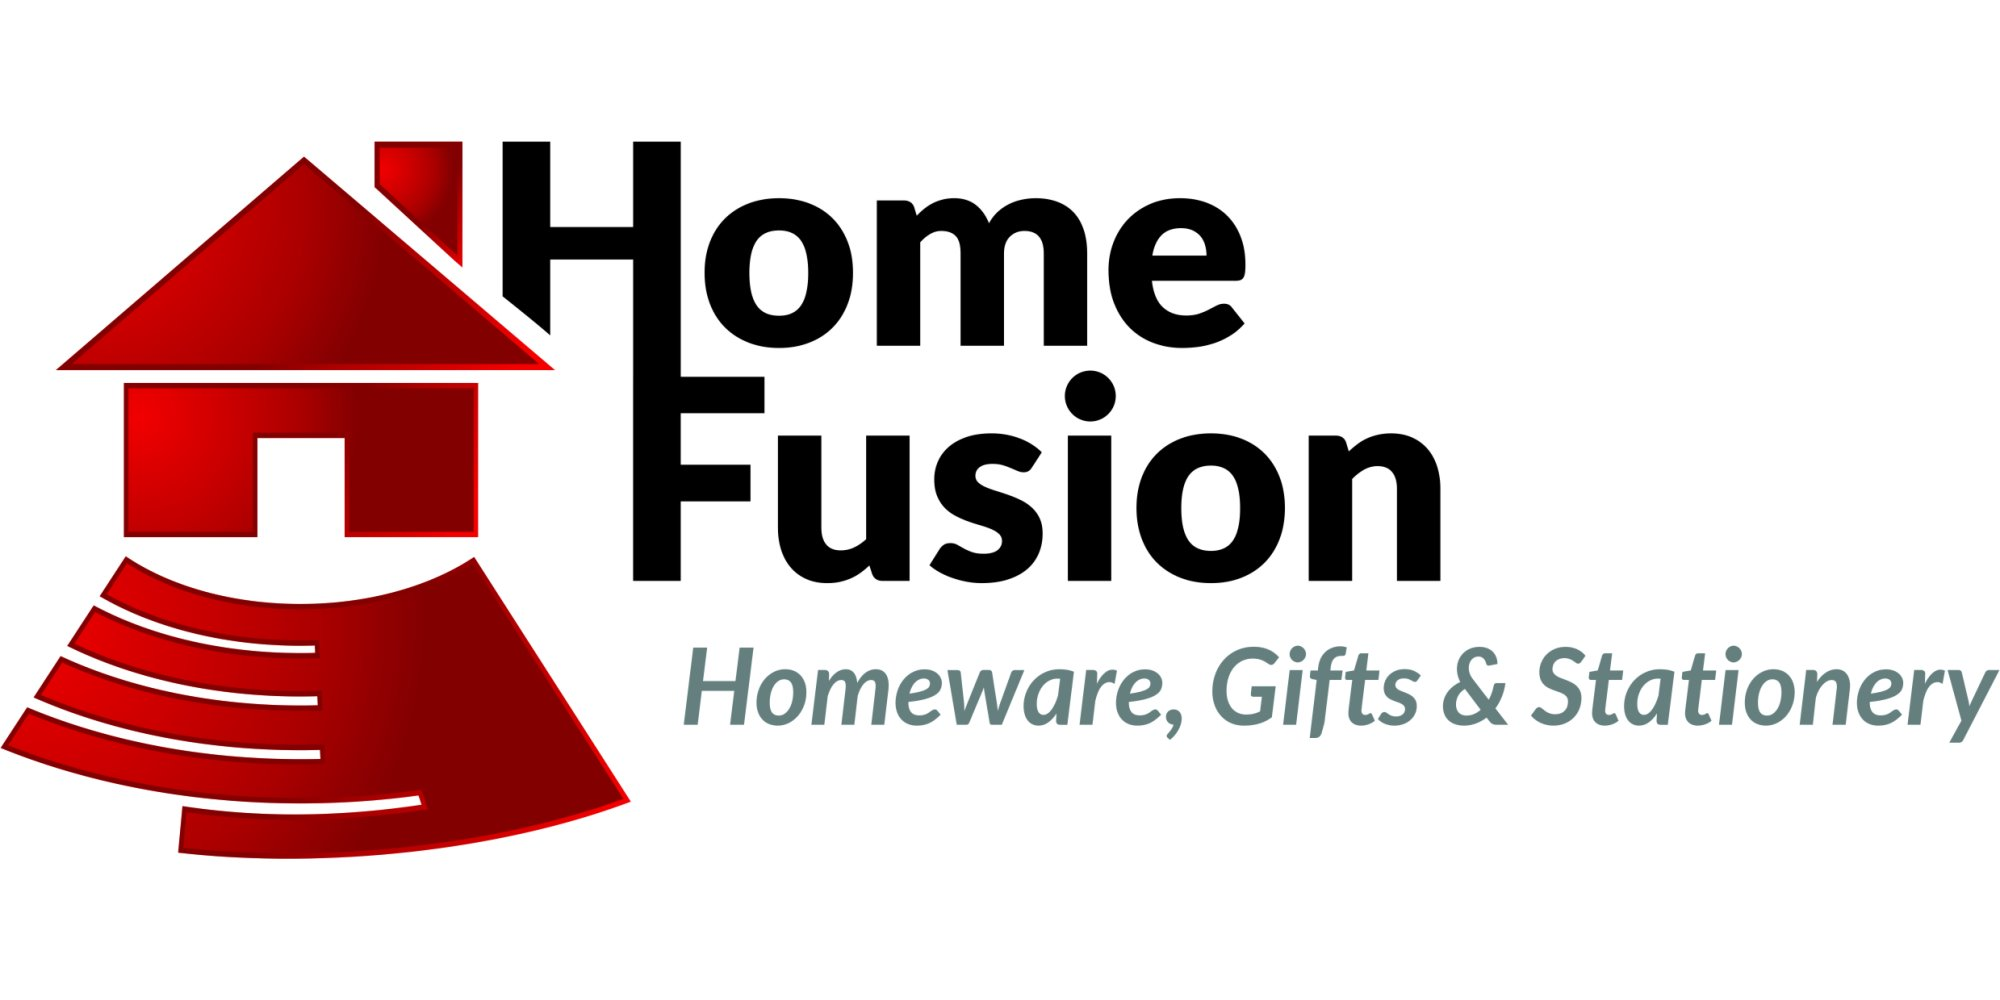 Read The Home Fusion Company Reviews